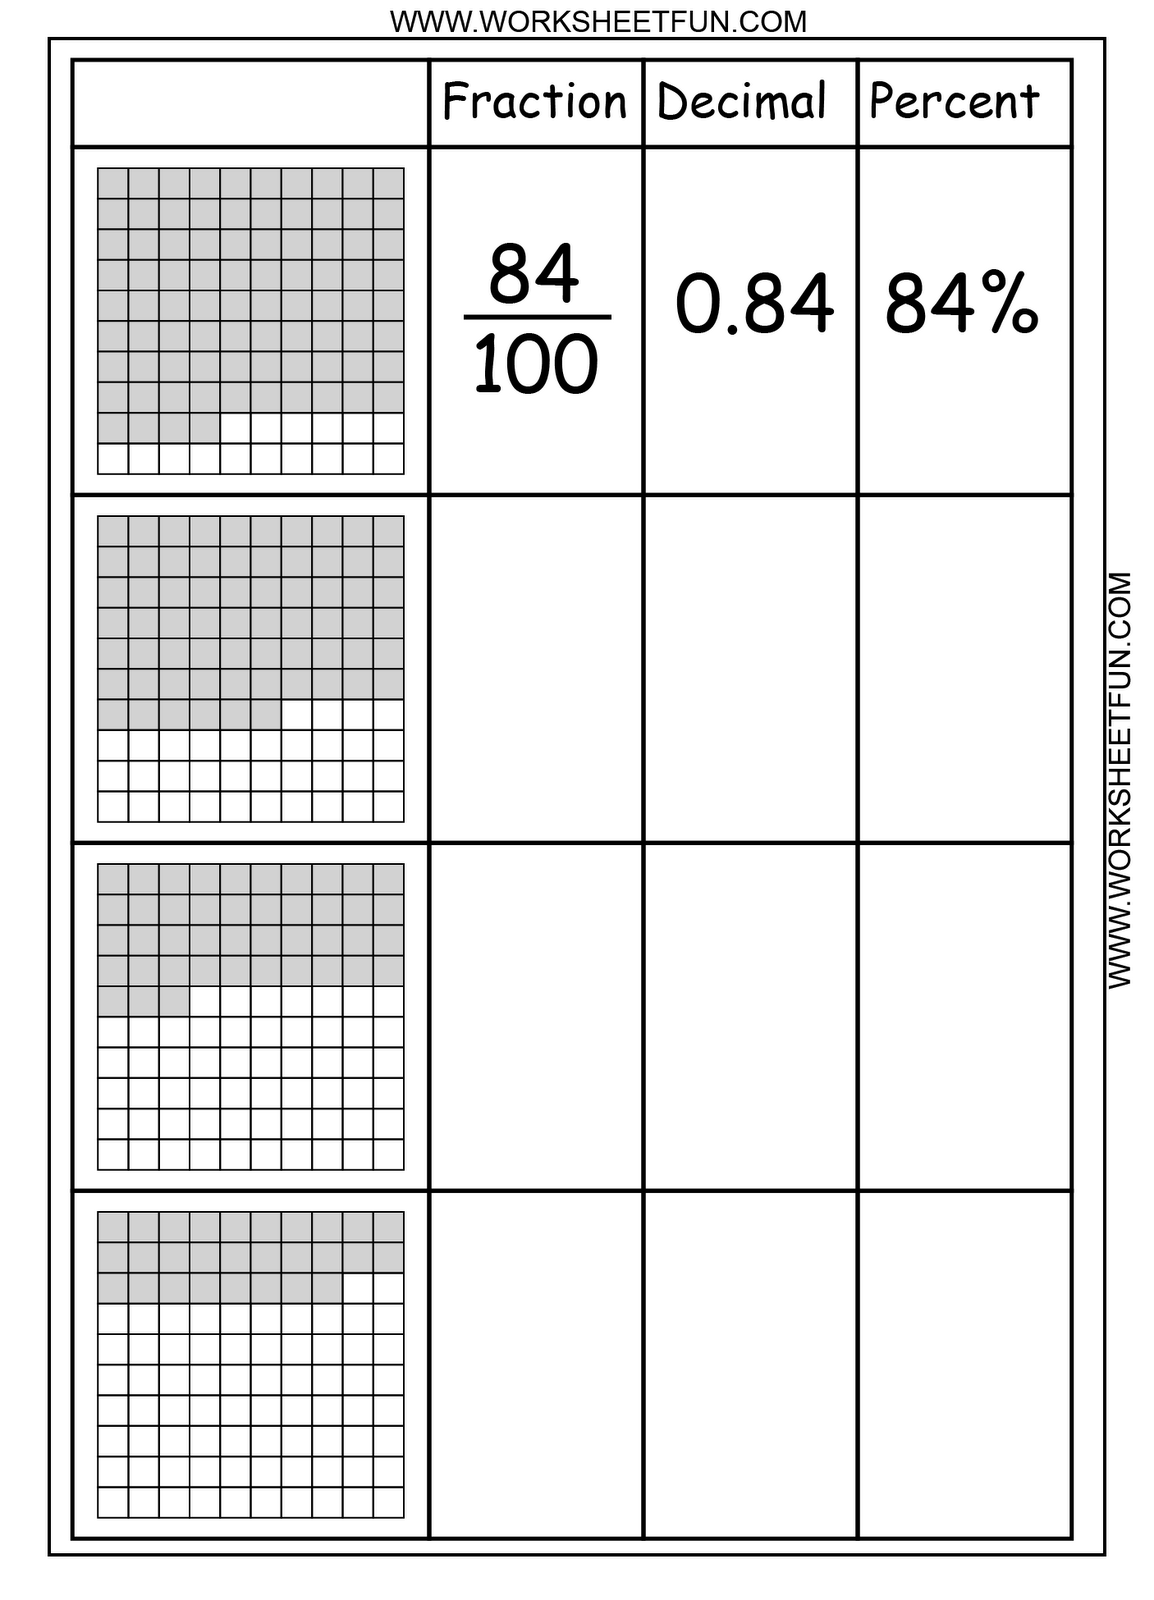 math worksheet : 1000 images about percents decimals fractions on pinterest  : Fraction Decimal And Percent Worksheet